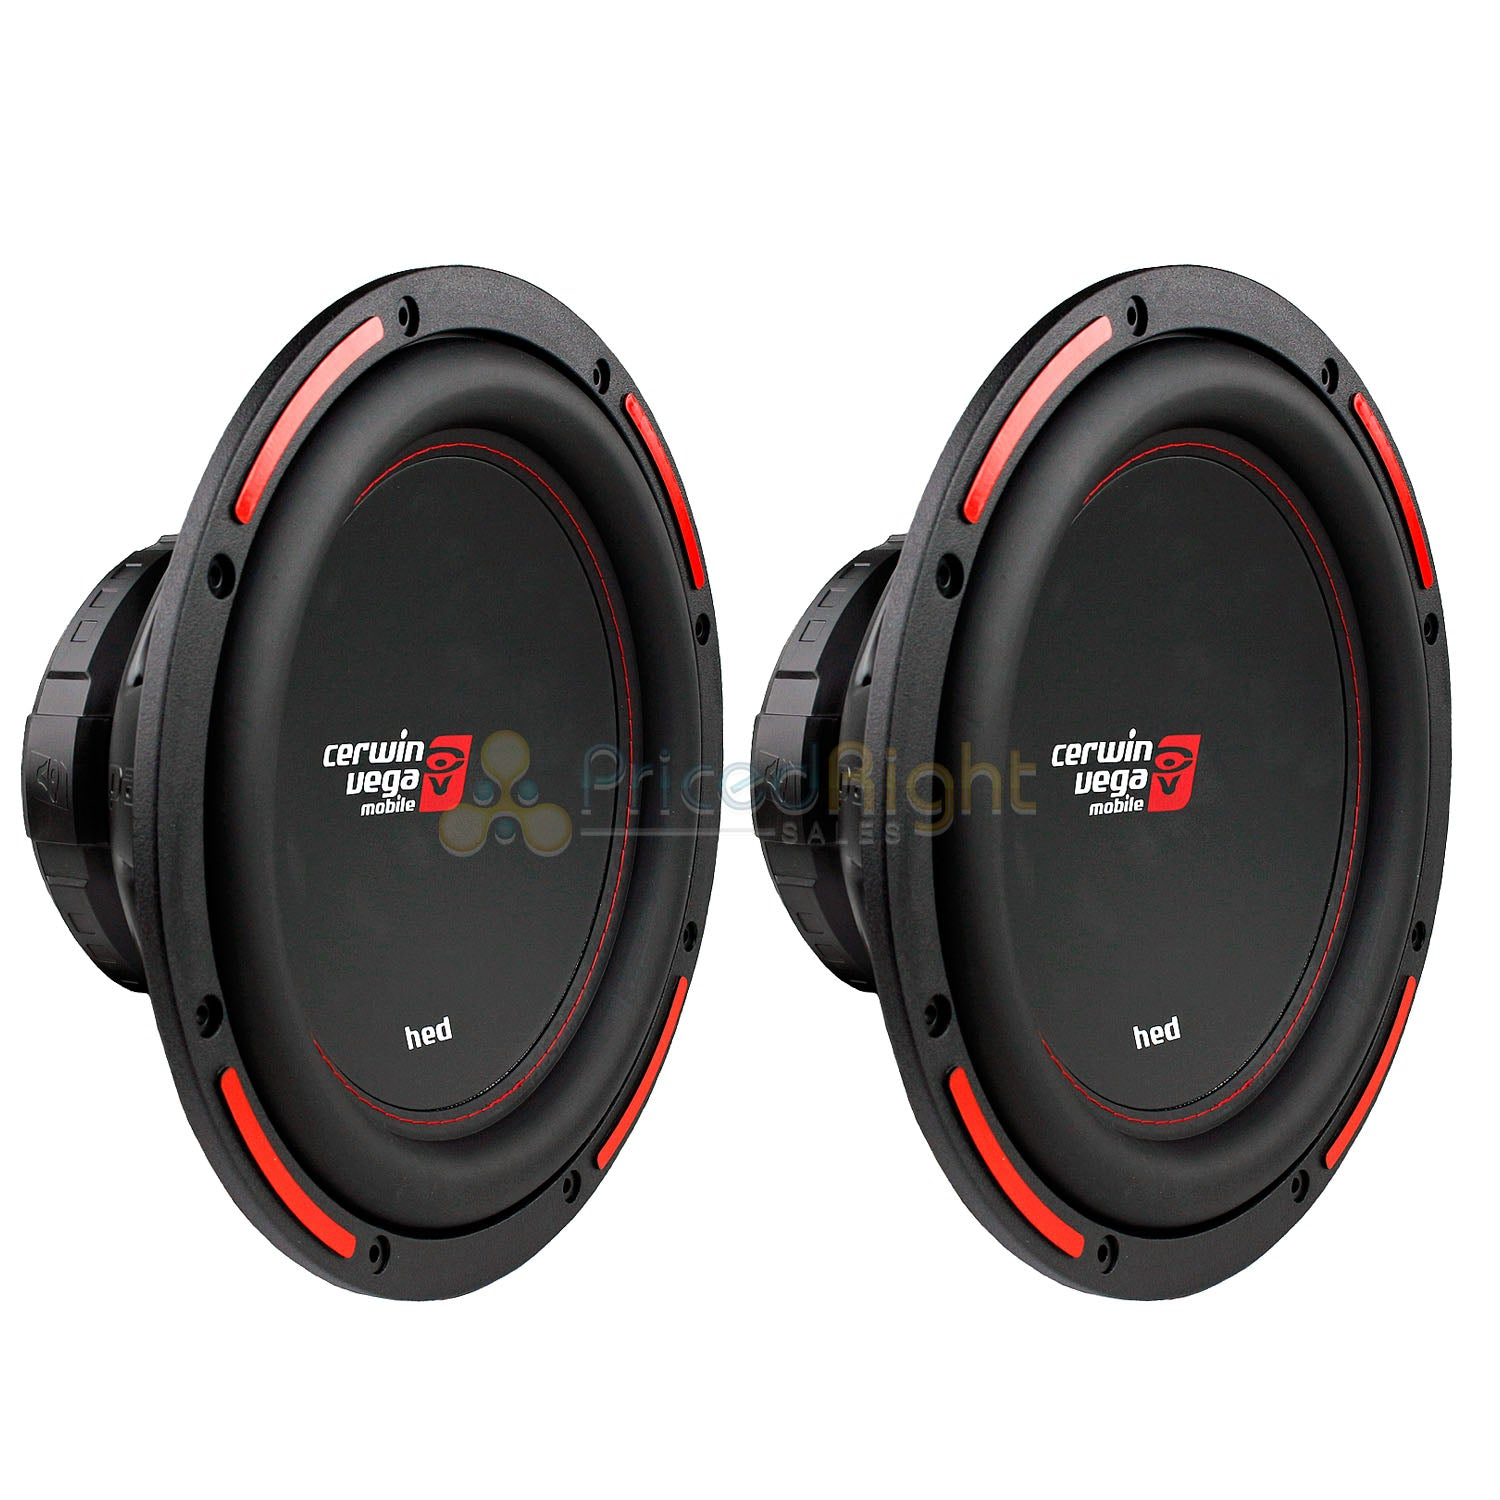 "2 Pack 12"" Dual 4 Ohm Subwoofers 1400W Max HED Series Cerwin Vega CER-H7124D Set"